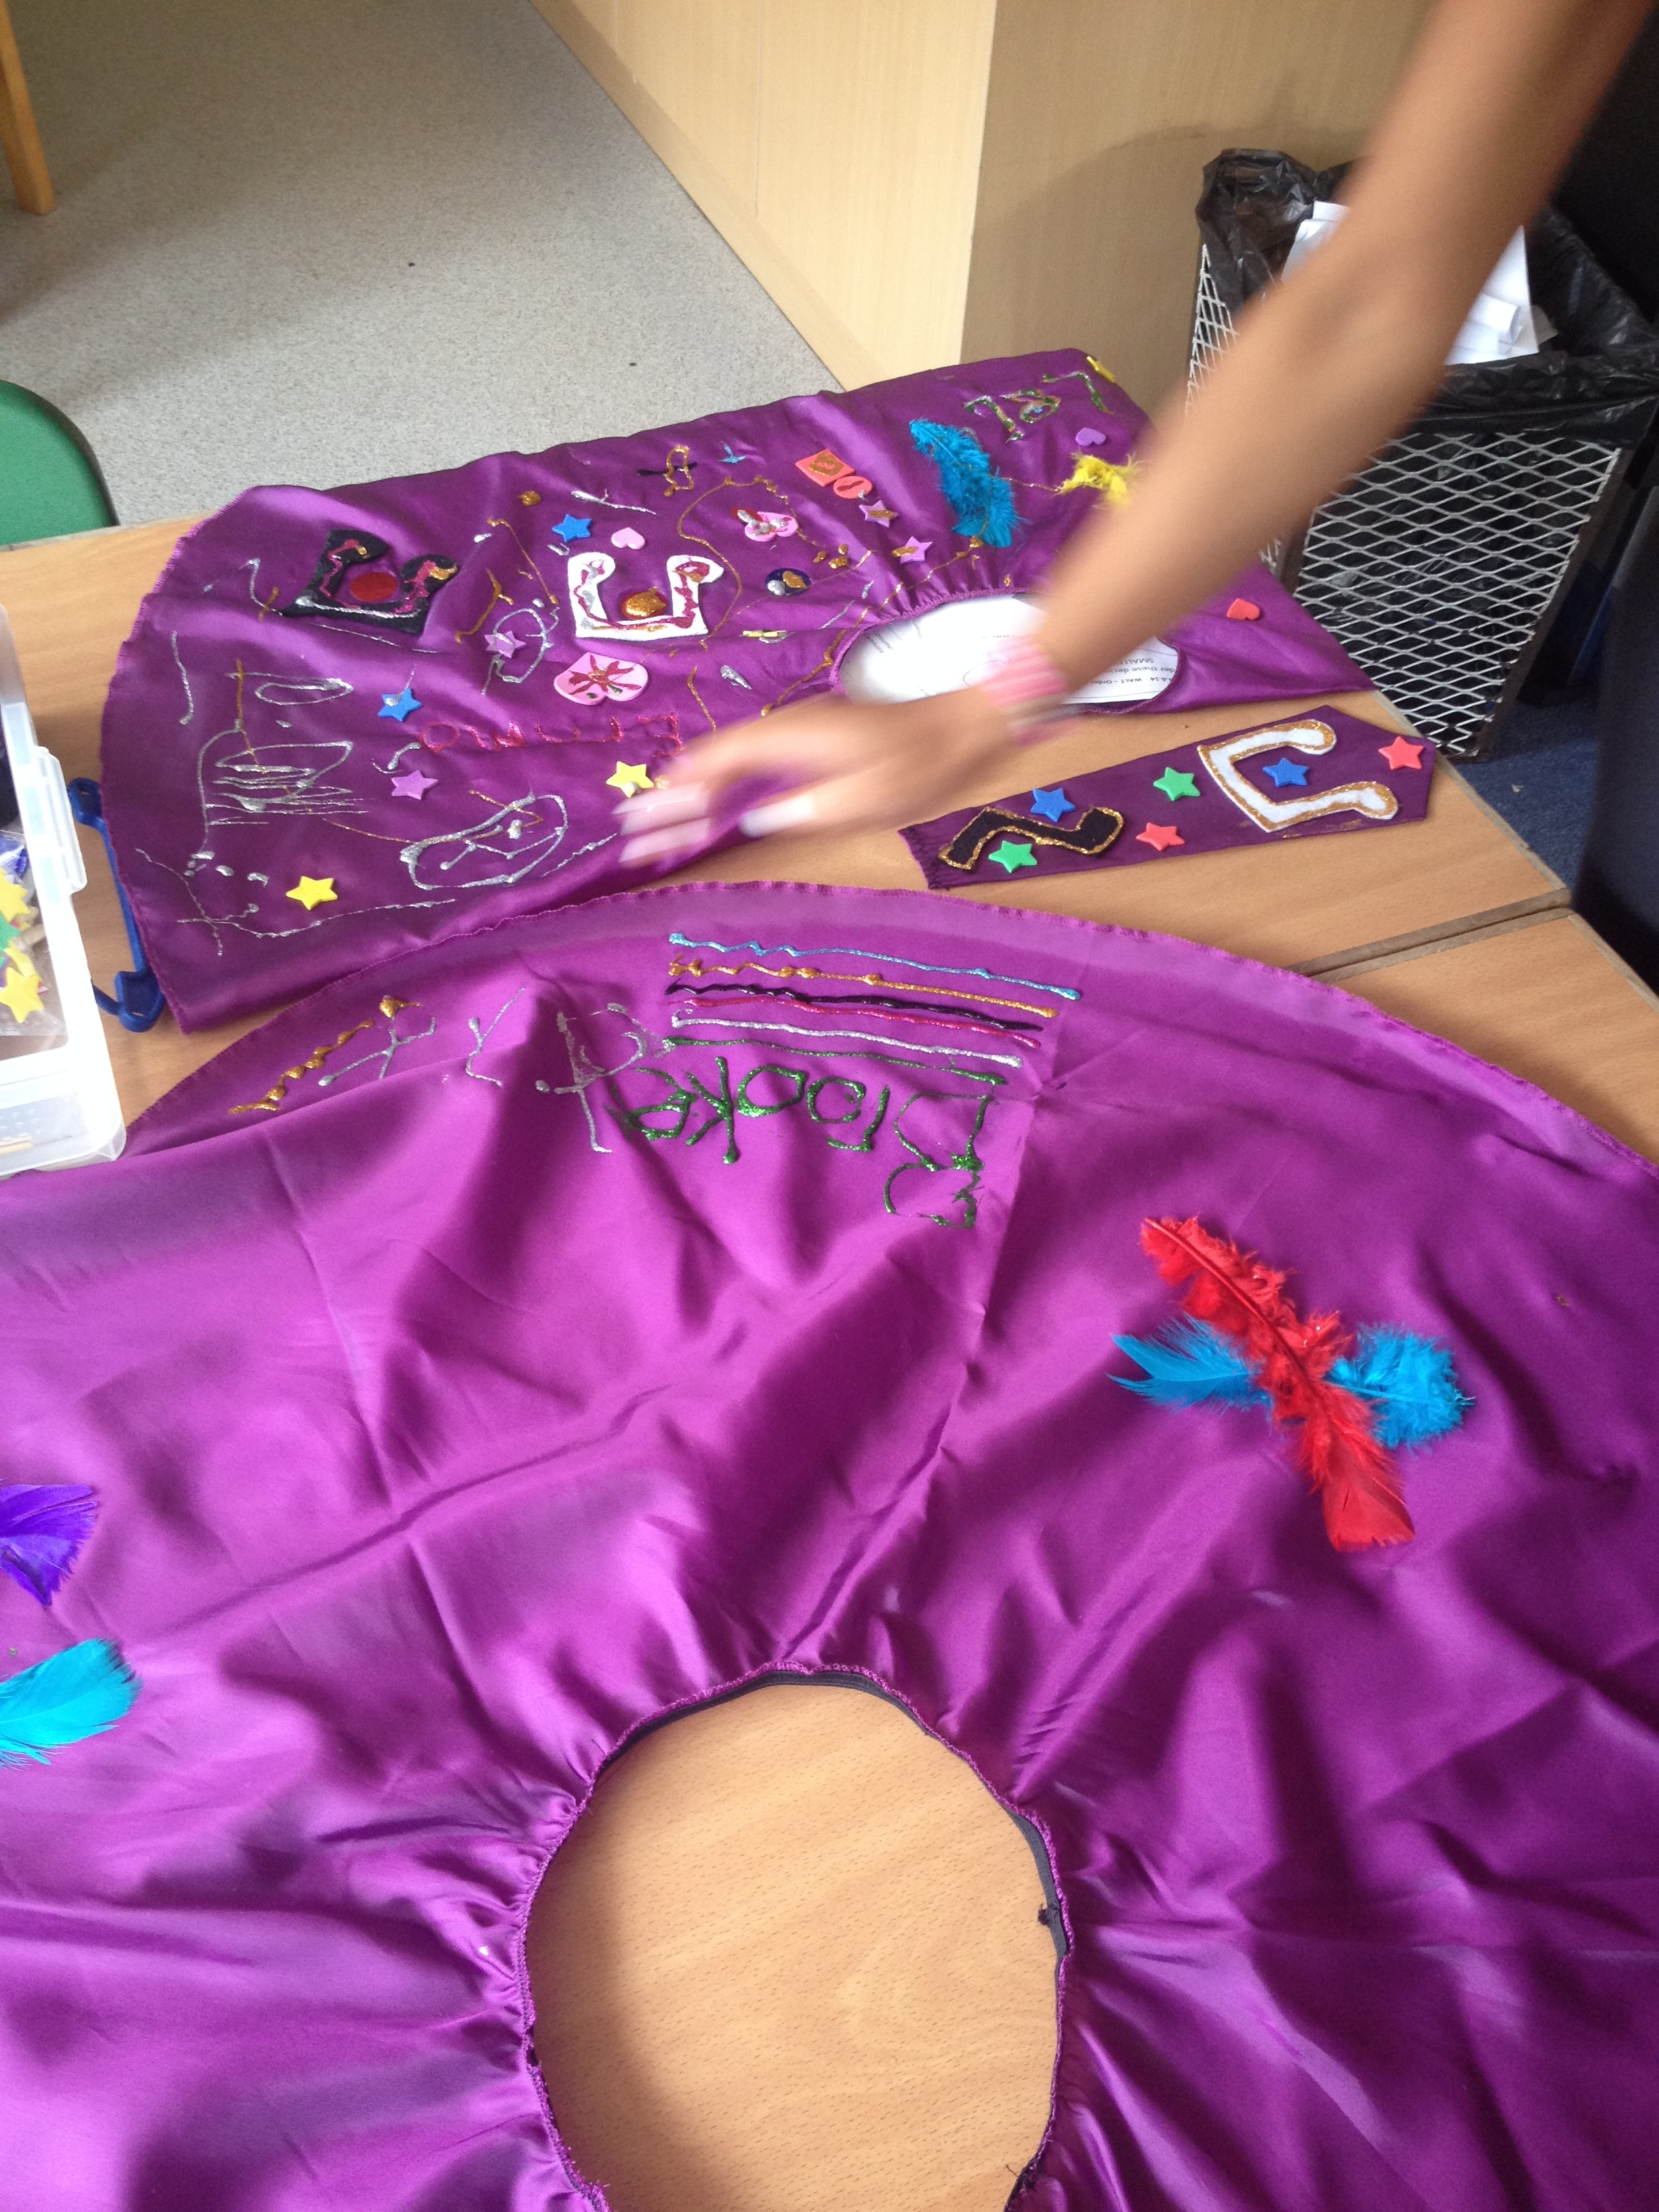 Rock N Roll skirt making!